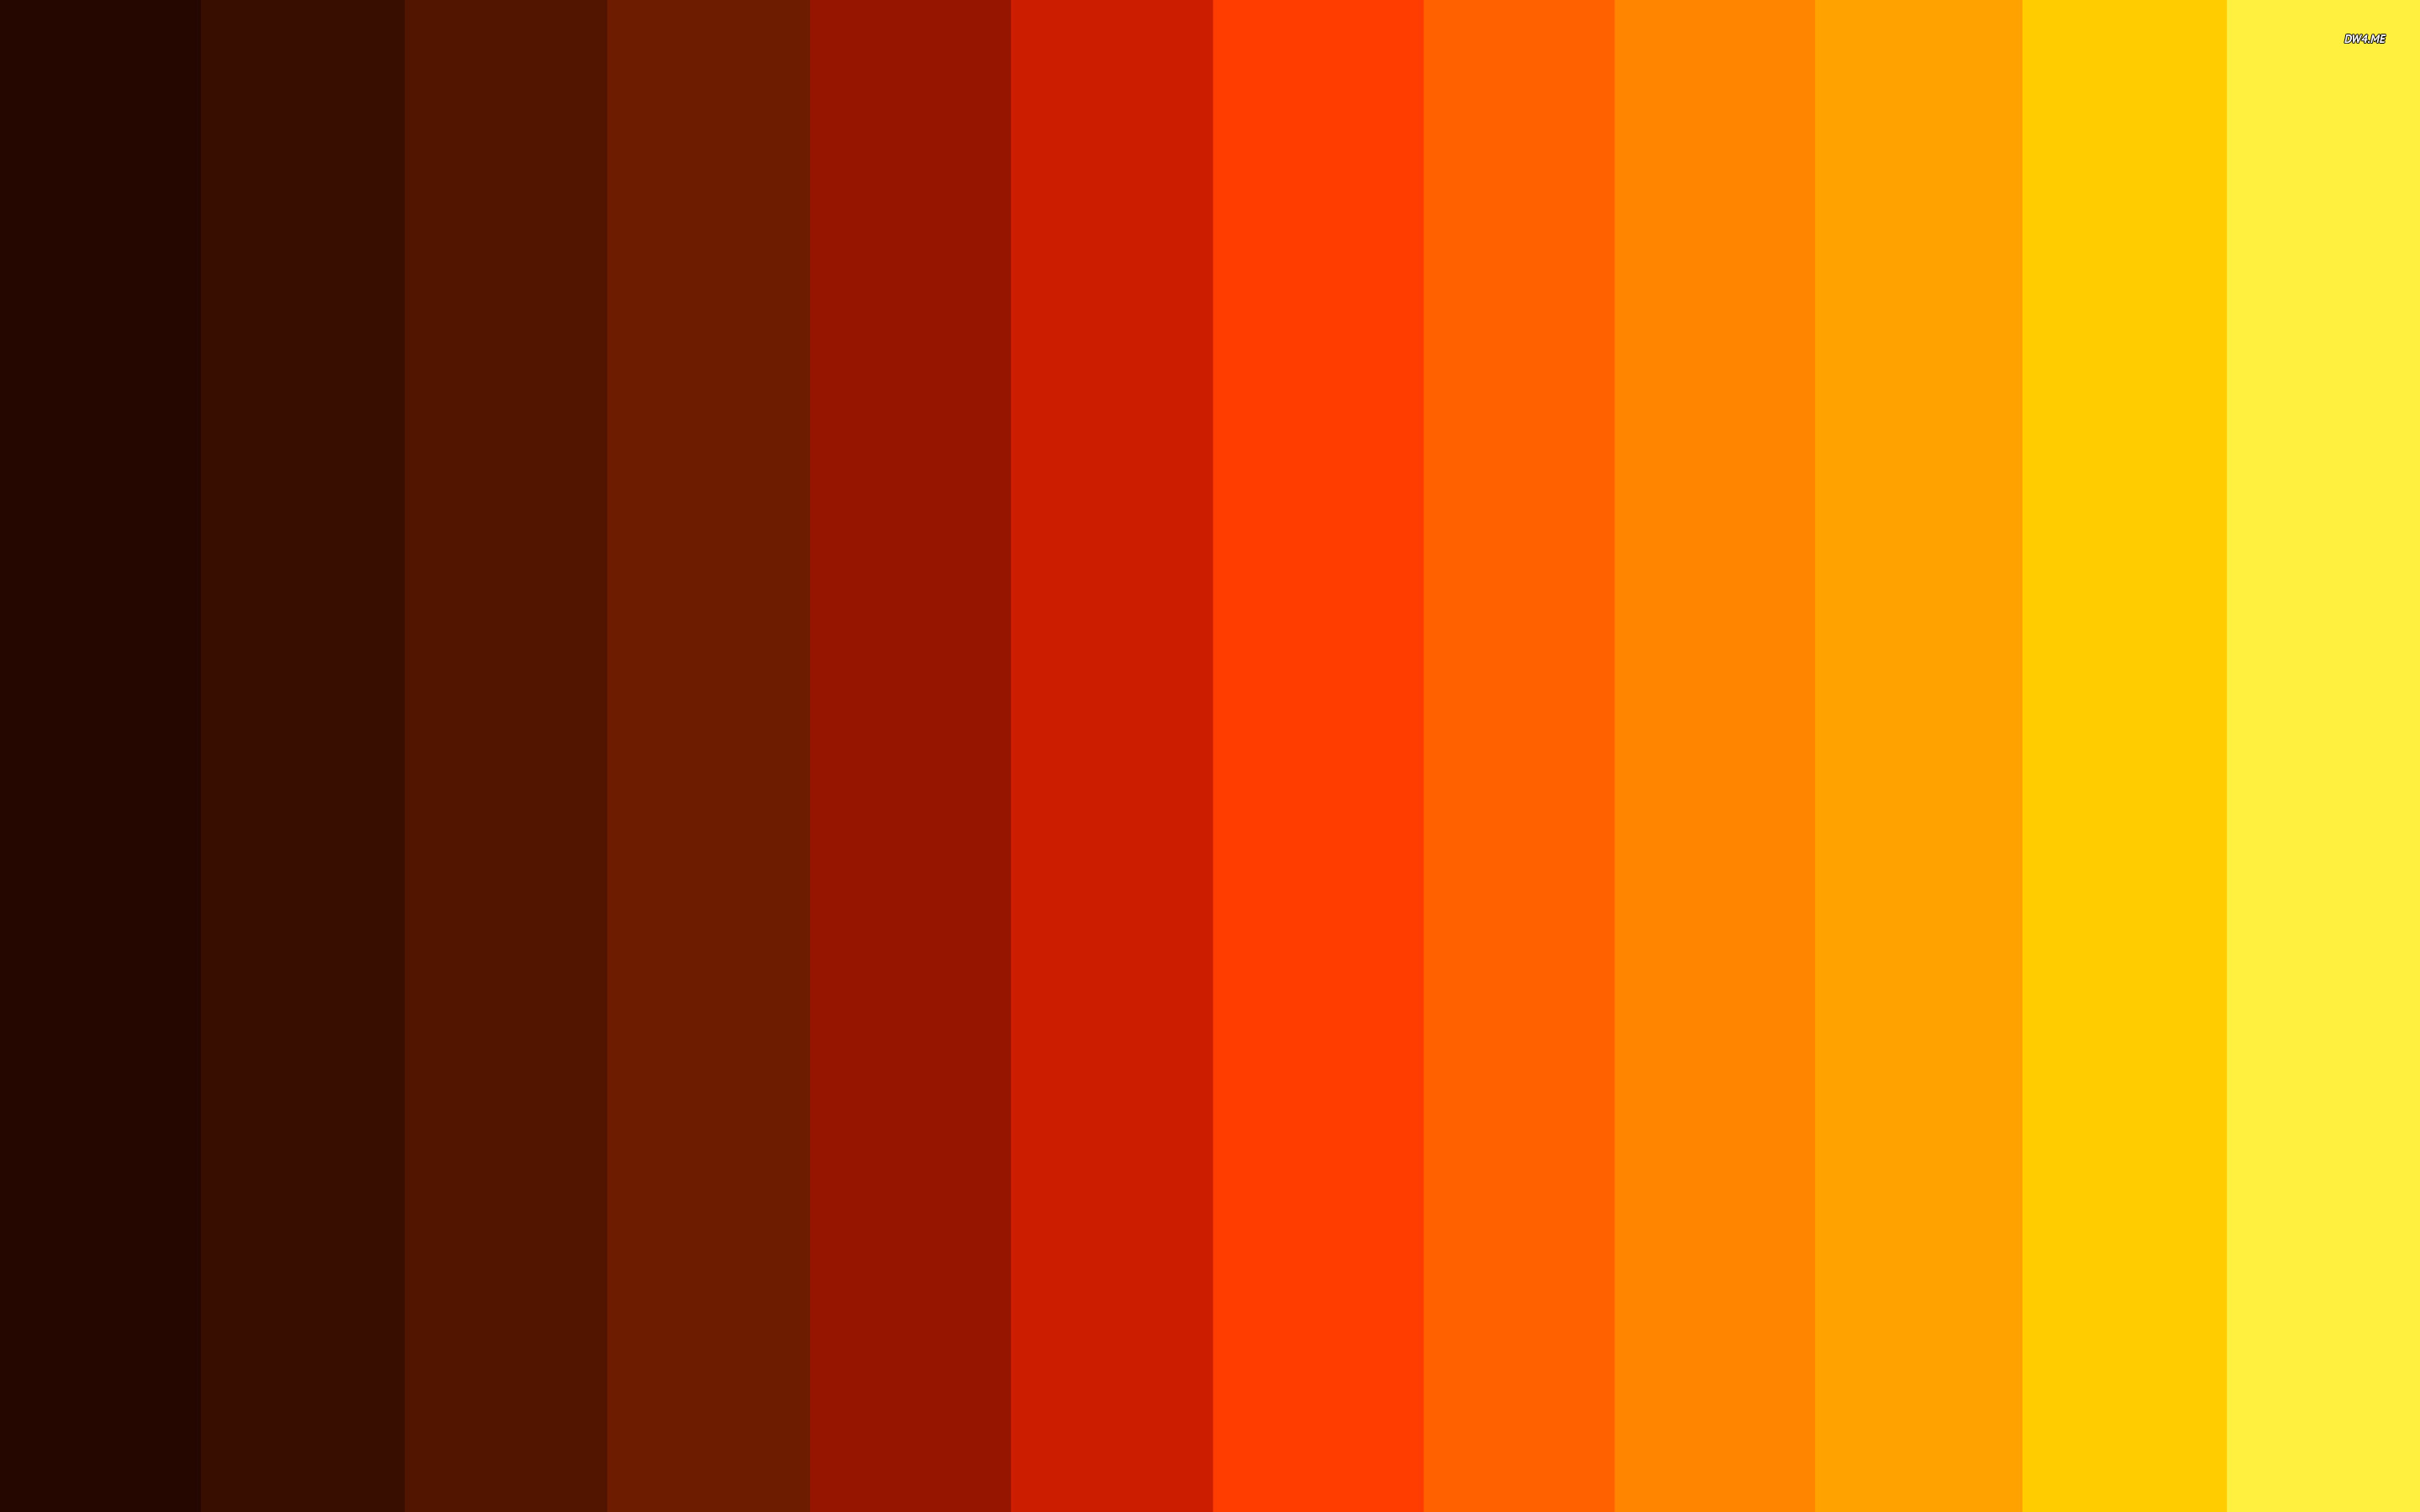 solid fall color background clipart